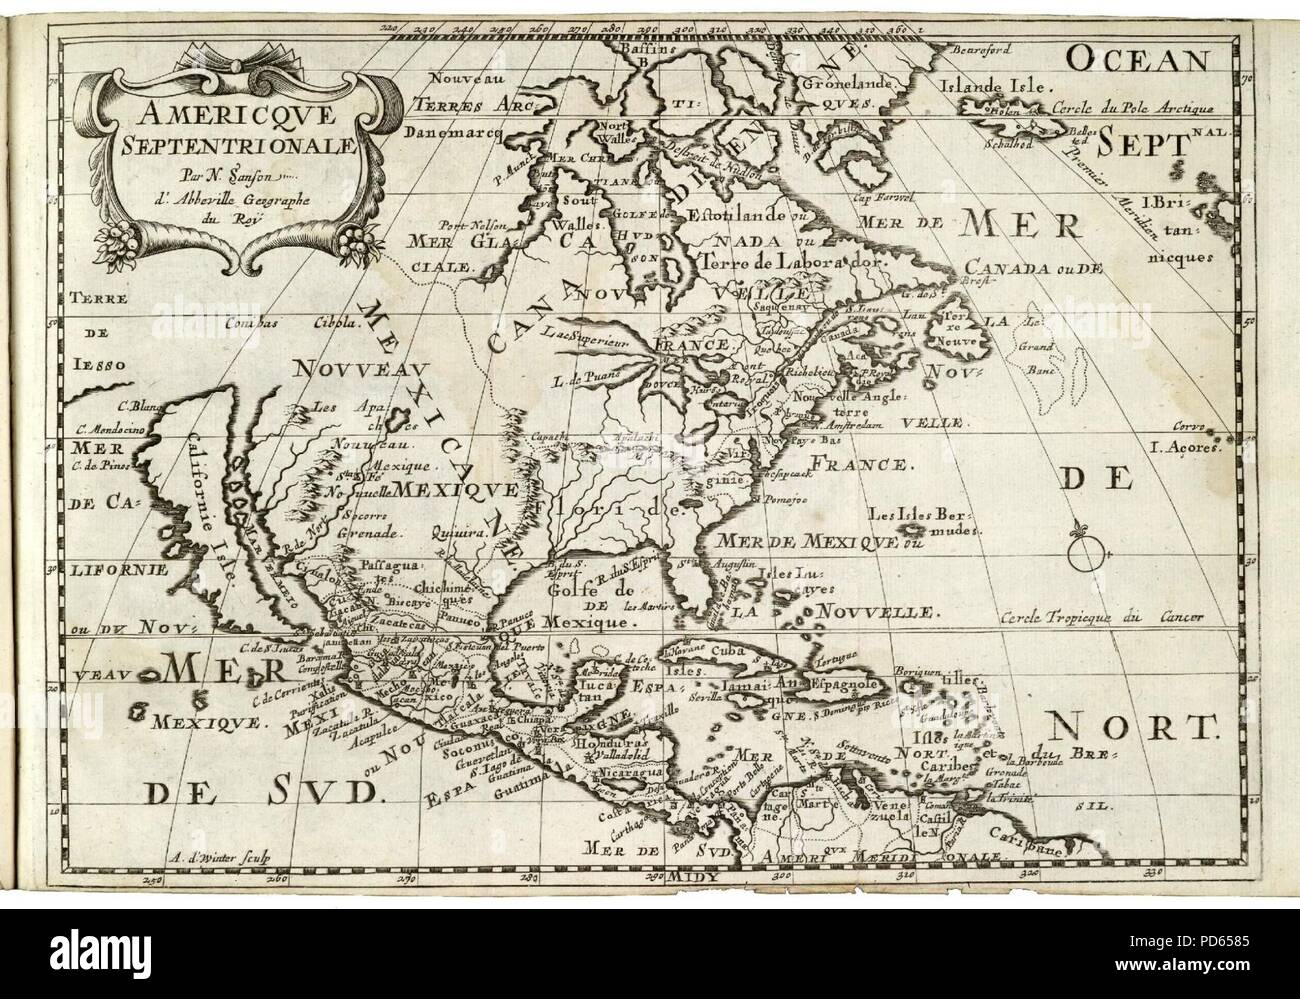 USA NORTH & CENTRAL AMERICA BLACKIE 1893 old map Caribbean ...